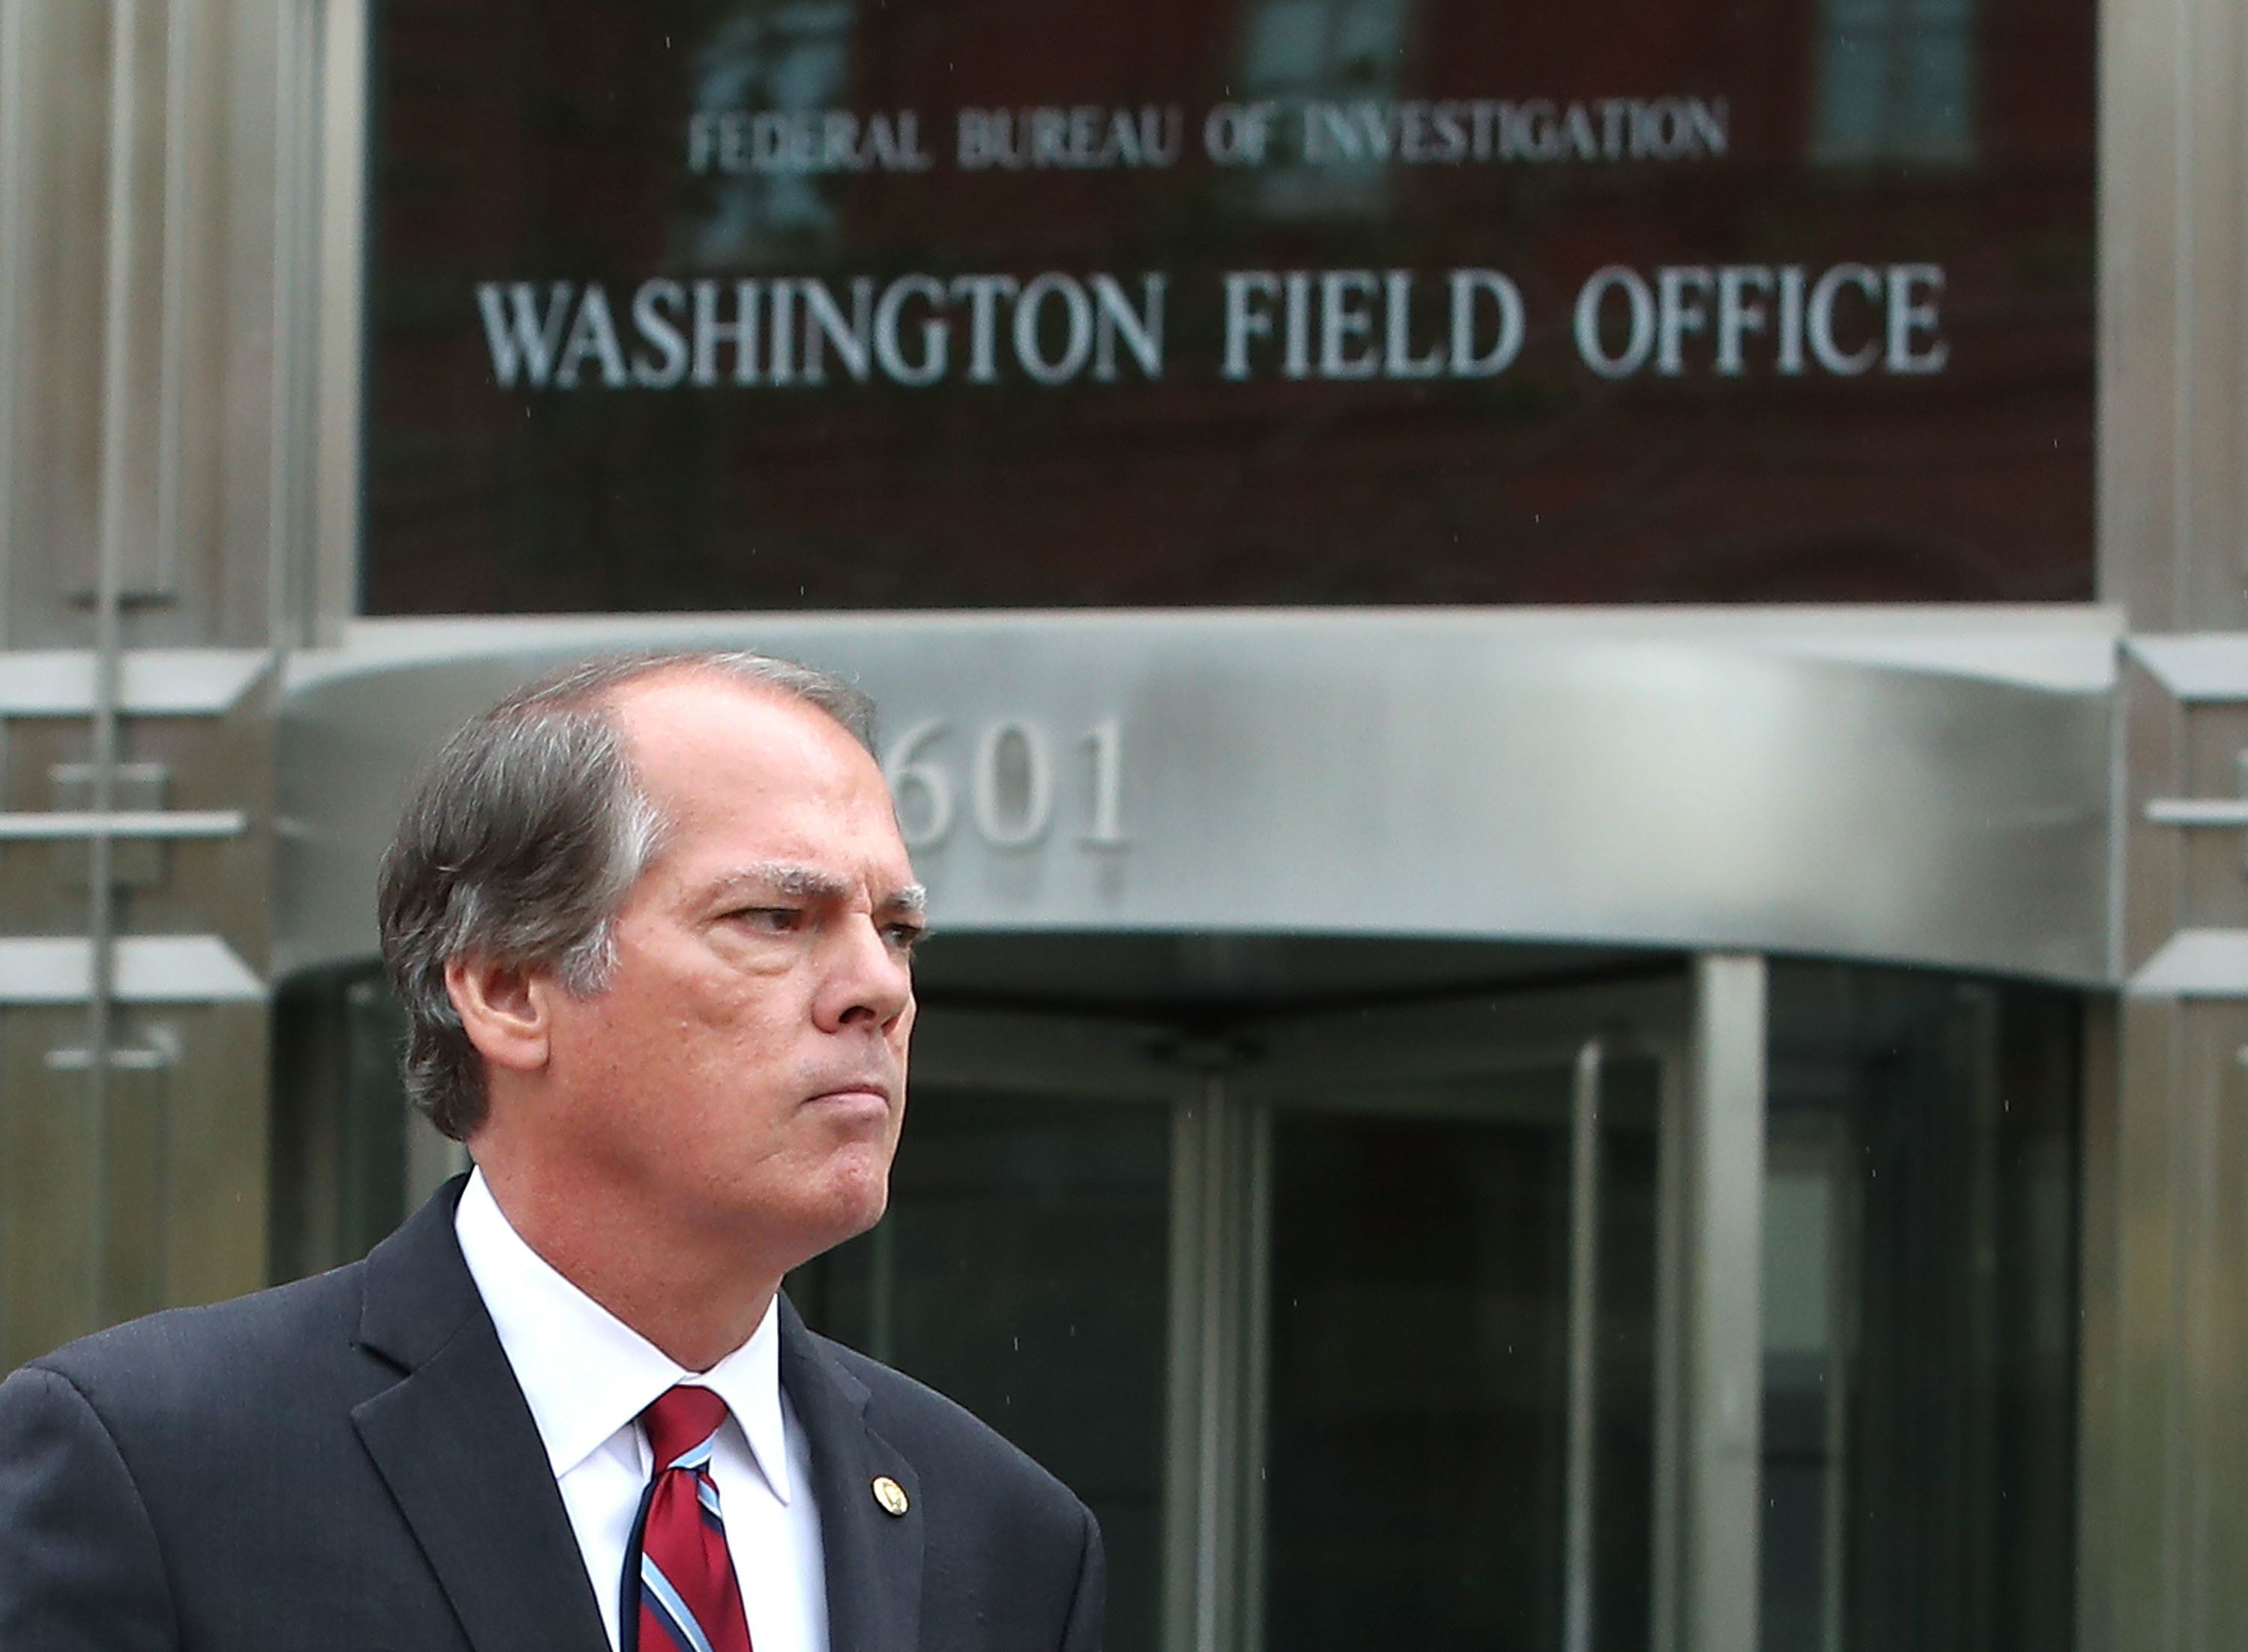 WASHINGTON, DC - JUNE 11:  James Wolfe, former director of security for the Senate Intelligence Committee, walks out from the Washington FBI Field Office after being processed on June 11, 2018 in Washington, DC. Wolfe was arrested last week on federal charges for leaking committee information to reporters.   (Photo by Mark Wilson/Getty Images)